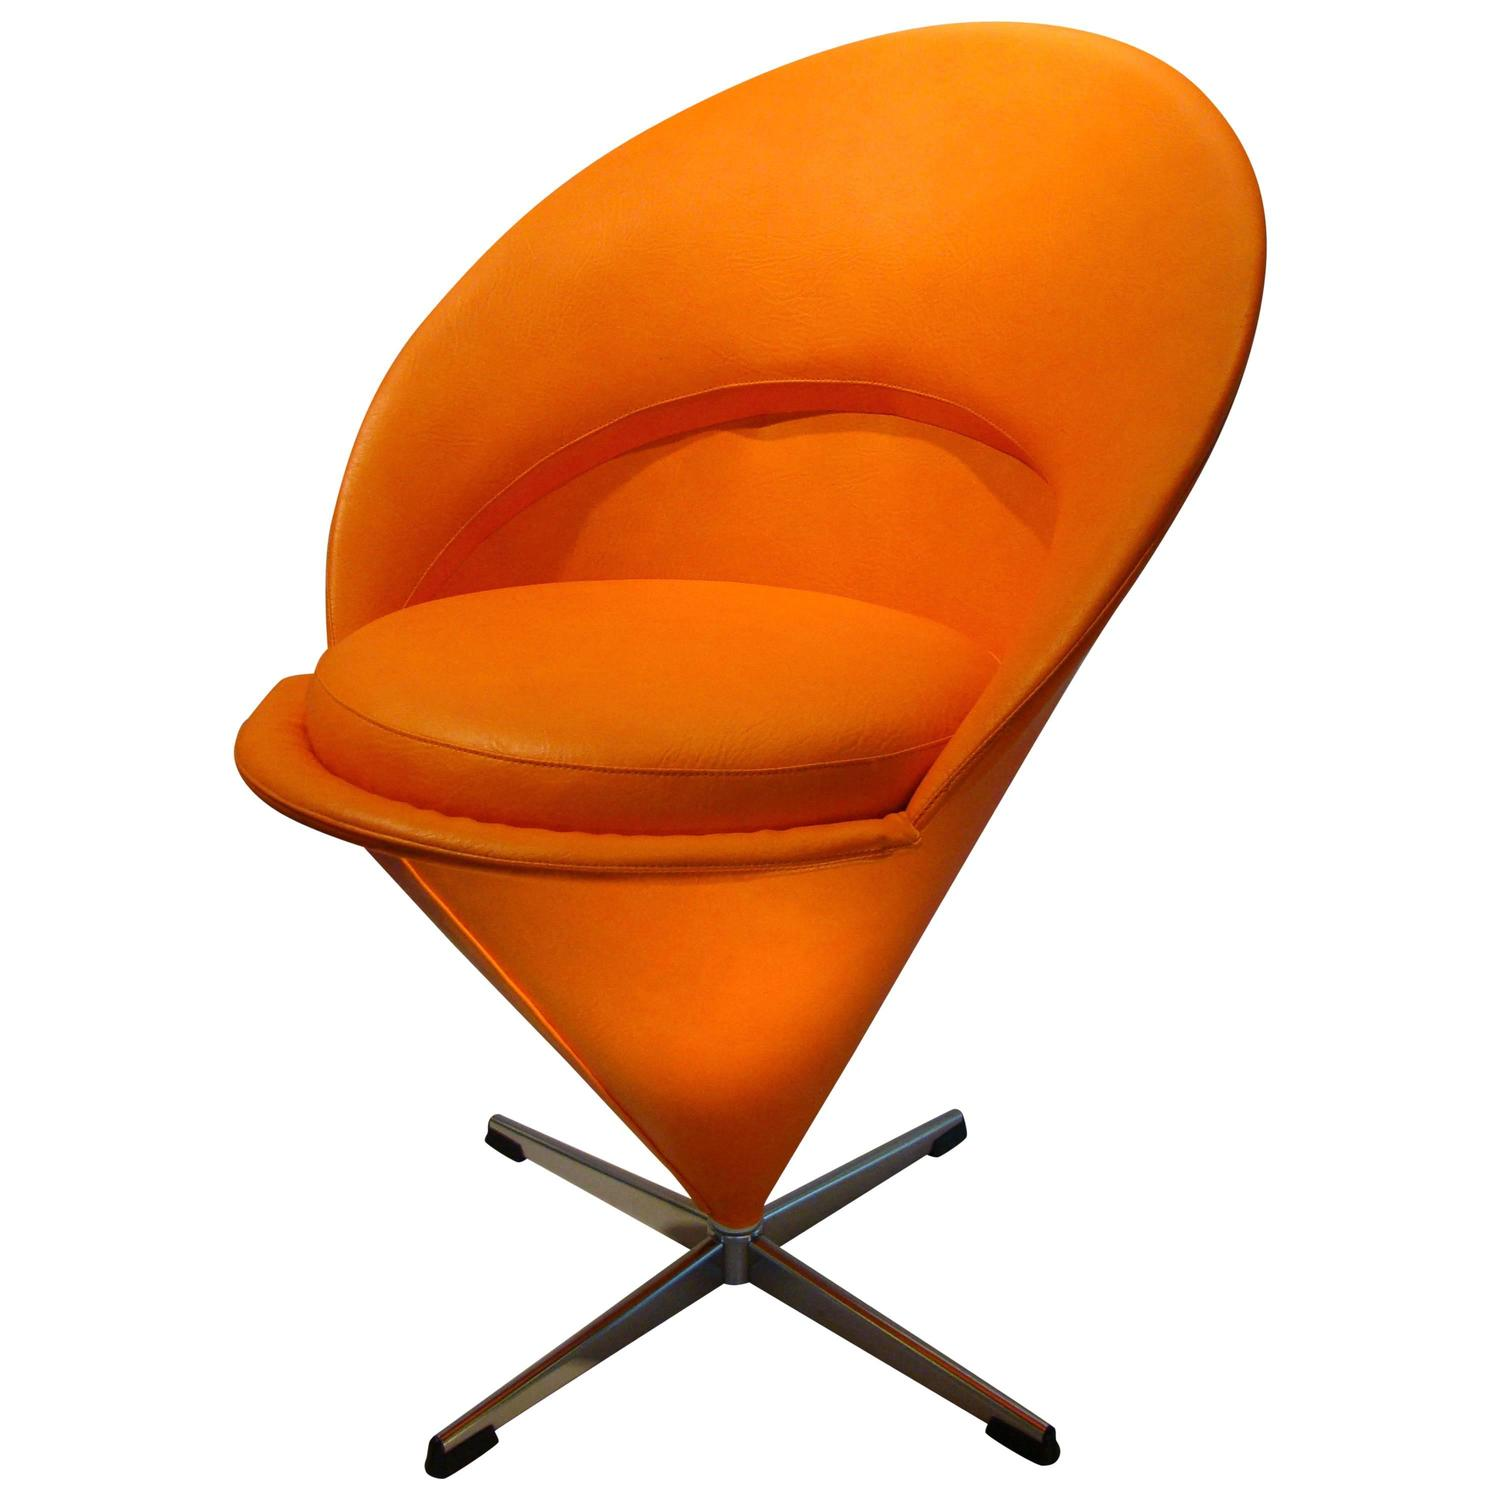 verner panton cone chair for sale at 1stdibs. Black Bedroom Furniture Sets. Home Design Ideas